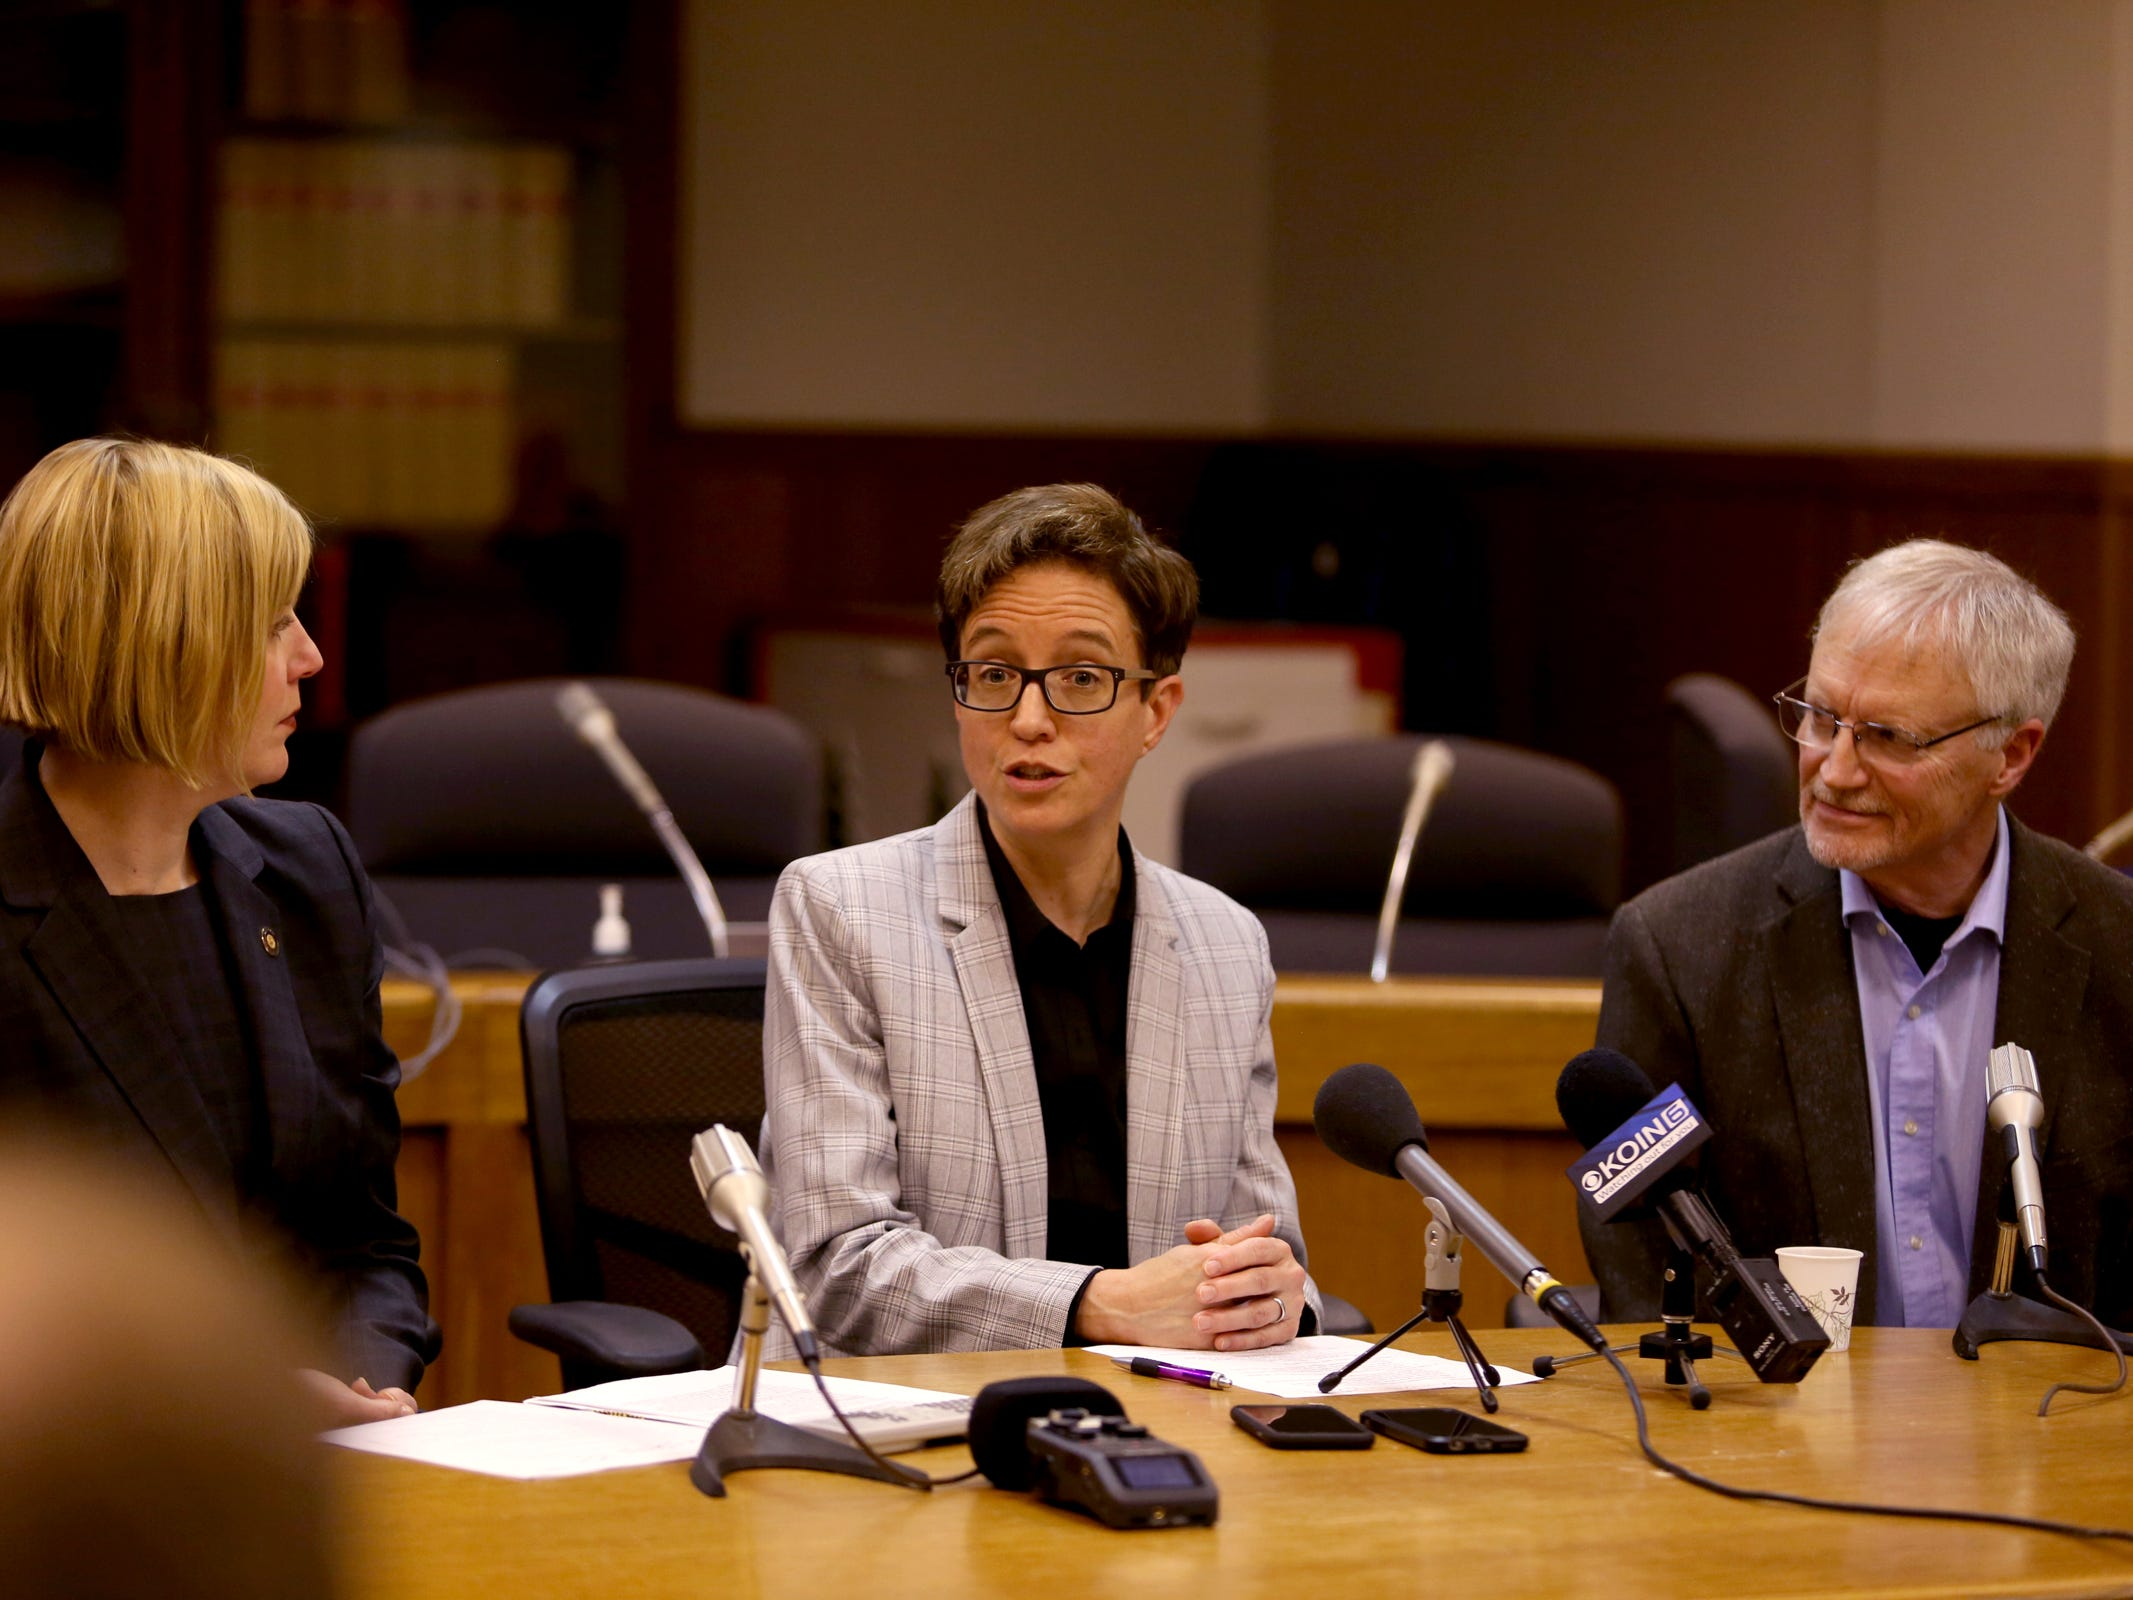 Rep. Jennifer Williamson, D-Portland, from left, House Speaker Tina Kotek and Rep. Carl Wilson, R-Grants Pass, during the AP Legislative Preview Day at the Oregon State Capitol in Salem on Friday, Jan. 18, 2019. The 2019 Oregon legislative session begins January 22.